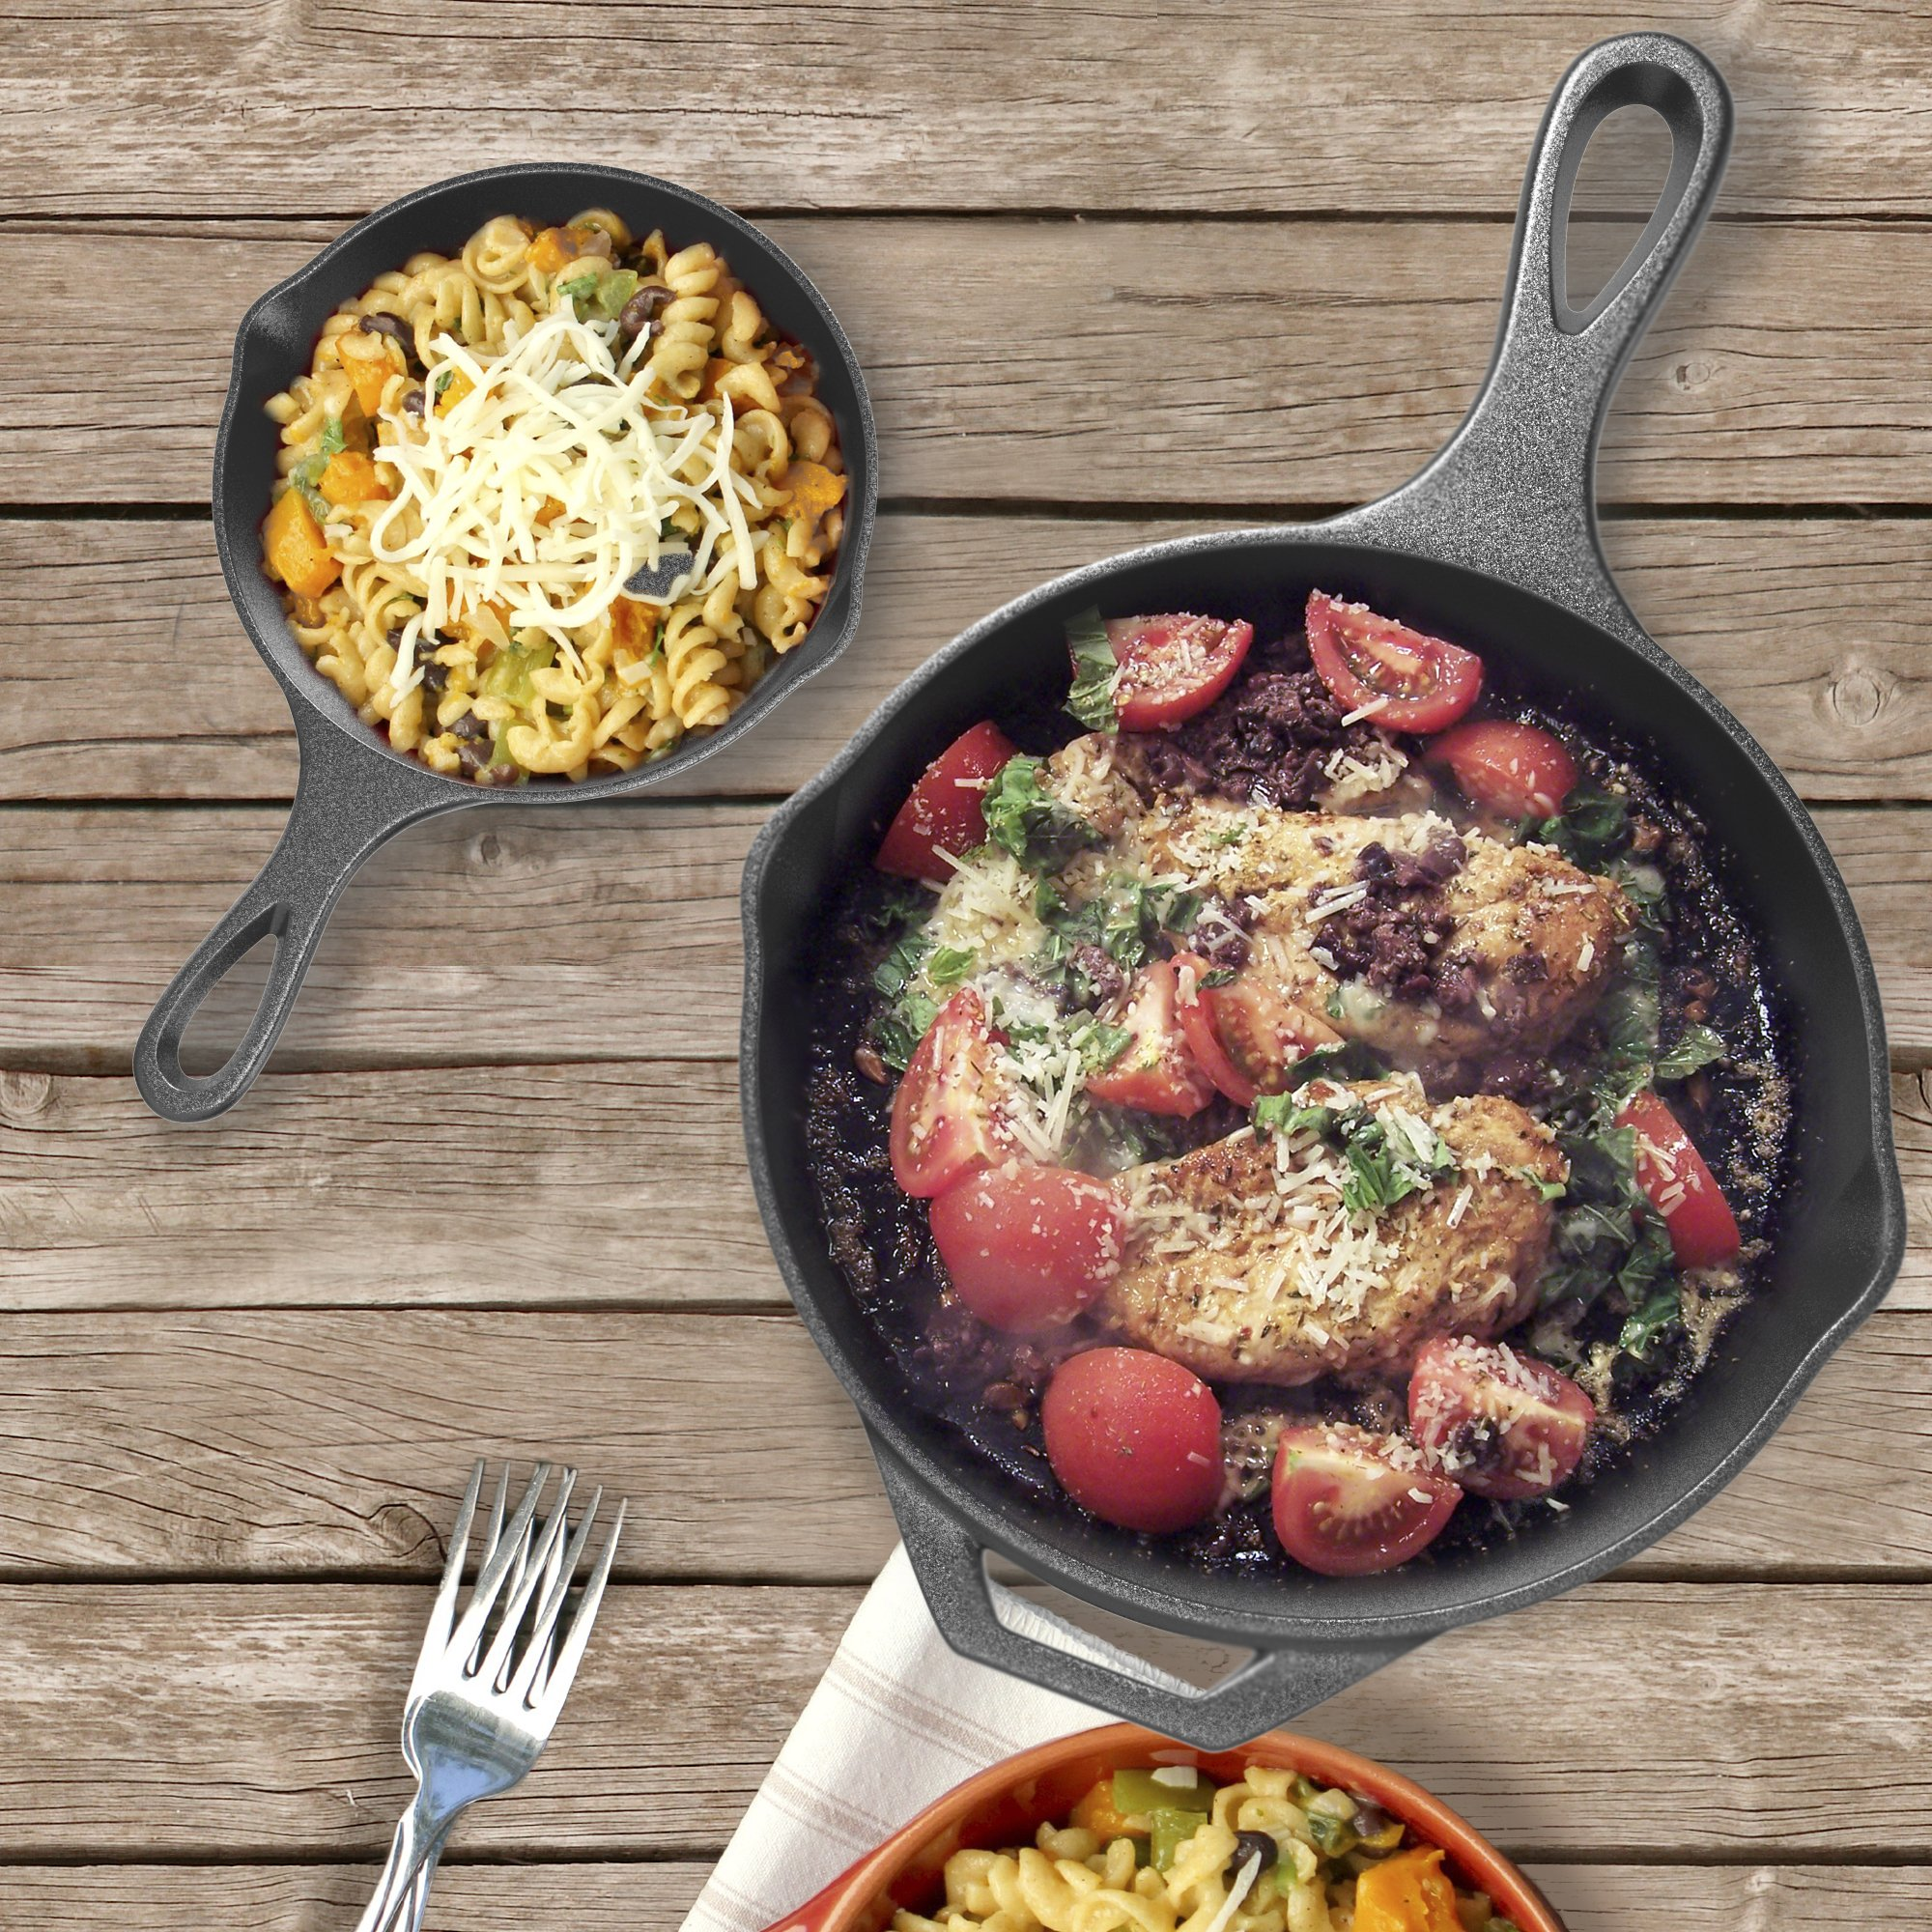 Pre-Seasoned Cast Iron Skillet 2 Piece Set (12.5 inch & 8 inch Pans) Best Heavy Duty Professional Restaurant Chef Quality Pre Seasoned Pan Cookware Set - Great For Frying, Saute, Cooking Pizza & More by Amsha Kitchen (Image #4)